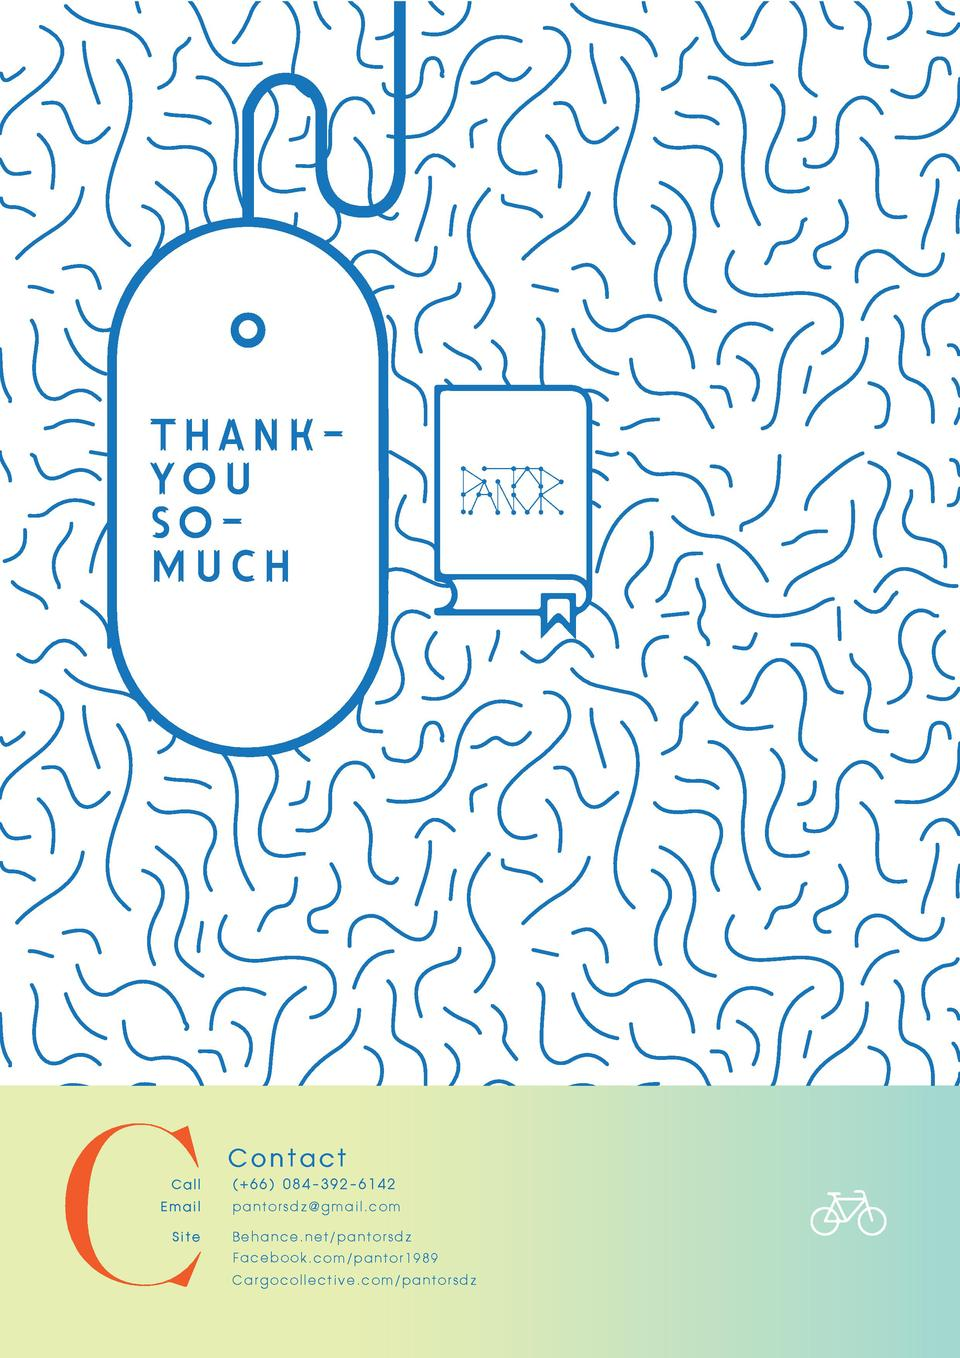 thankyou somuch  Call Email Site  Contact   66  084-392-6142 pantorsdz gmail.com Behance.net pantorsdz Facebook.com pantor...